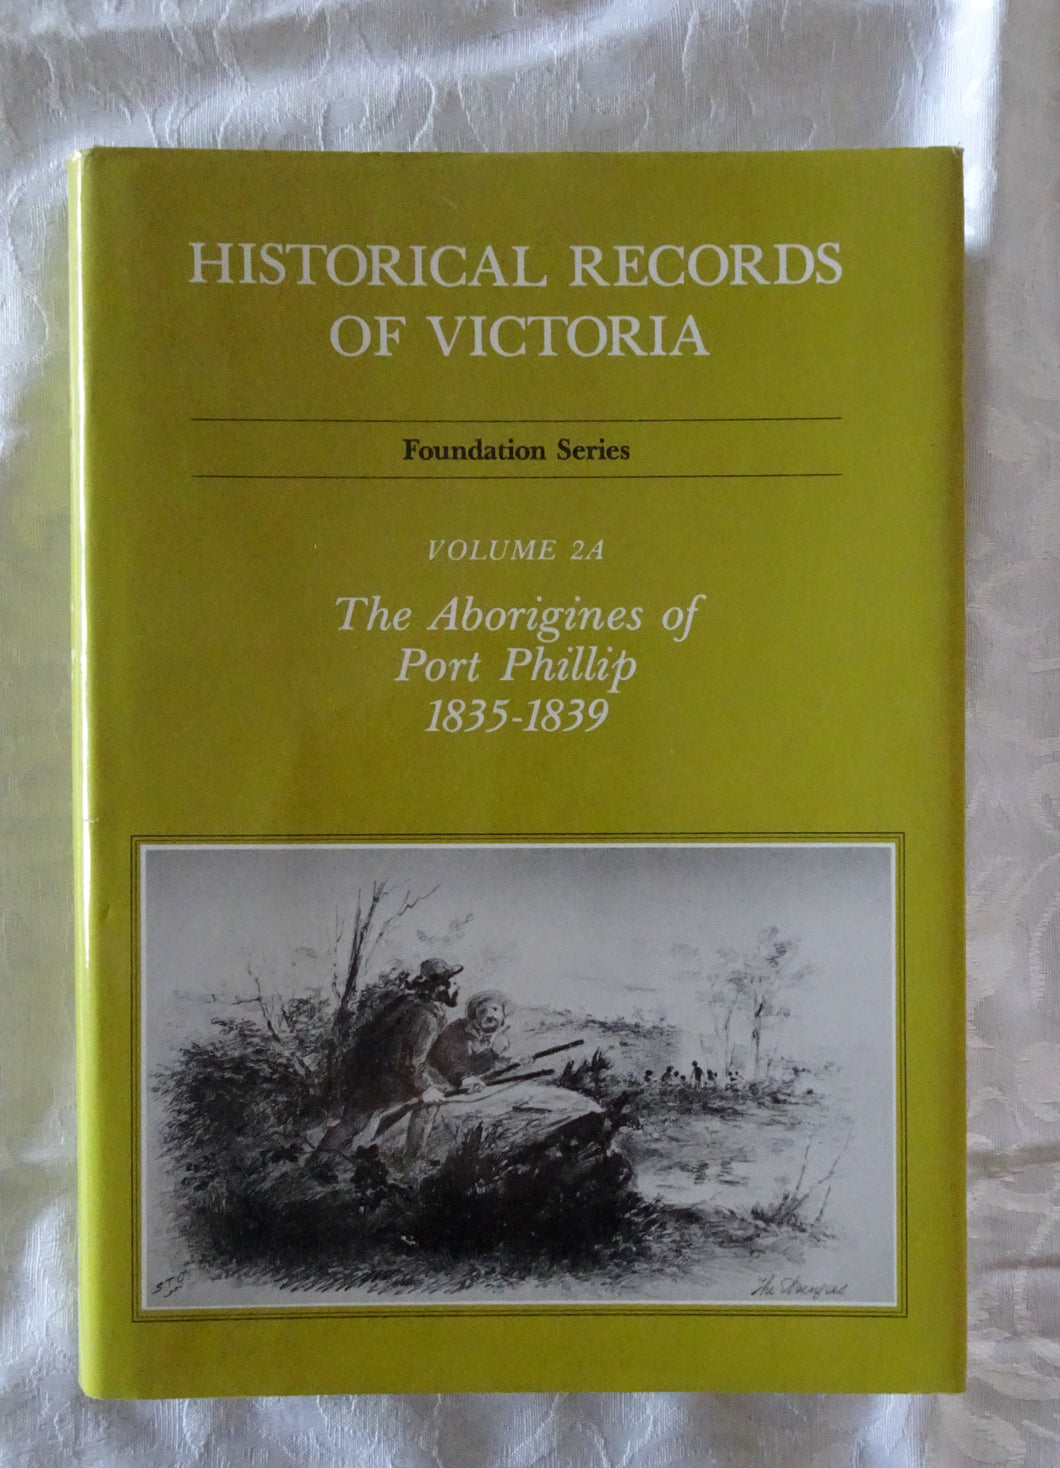 Historical Records of Victoria - The Aborigines of Port Phillip 1835-1839